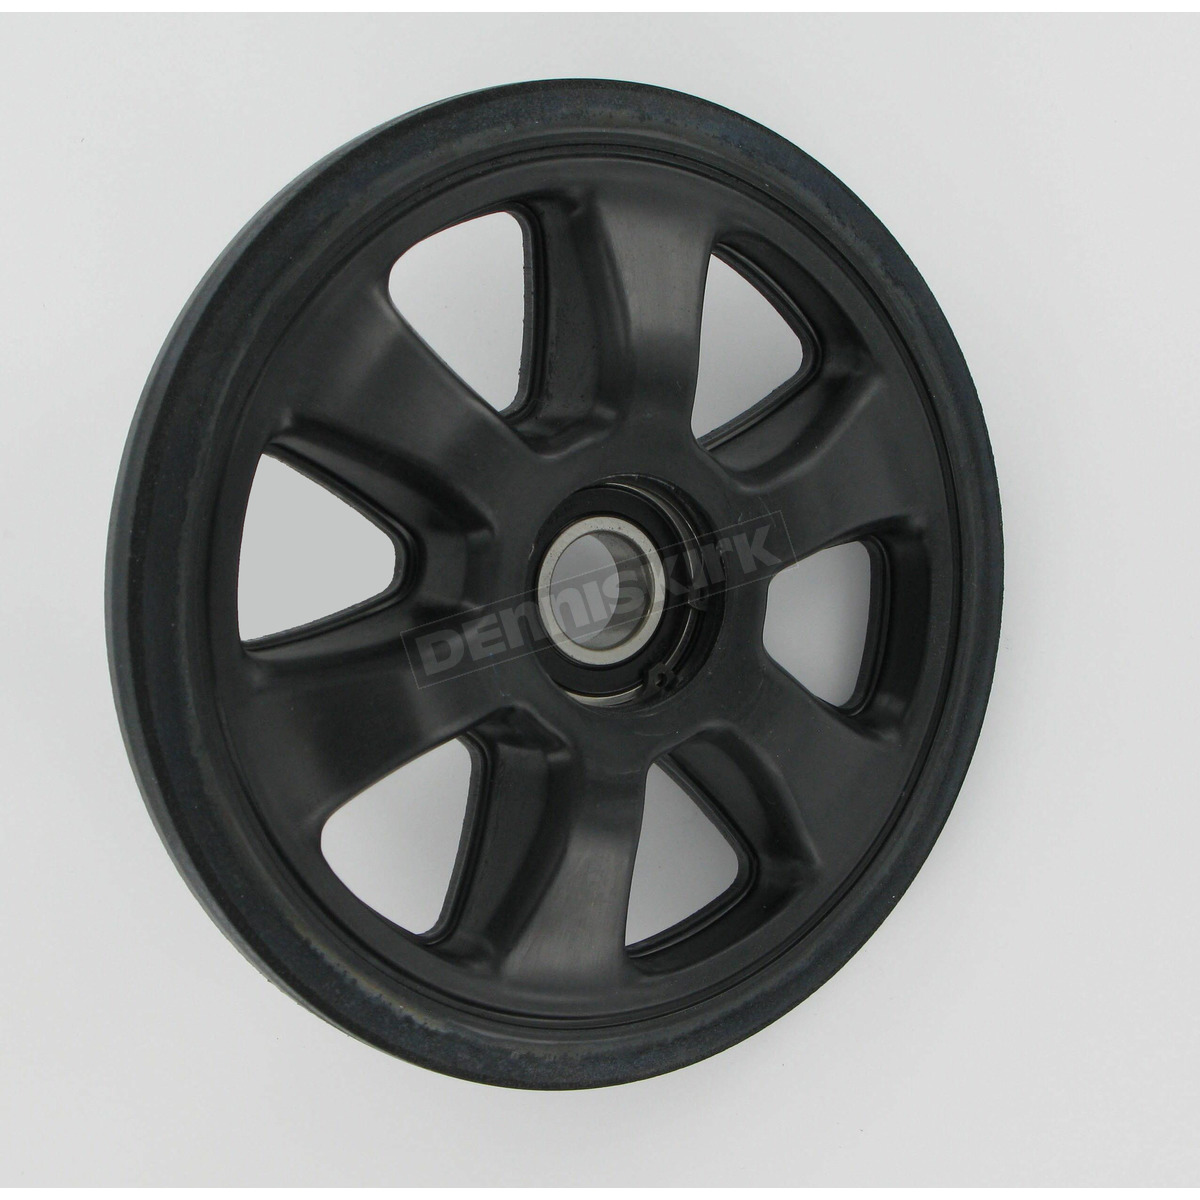 Replacement Wheels For Yamaha Apex